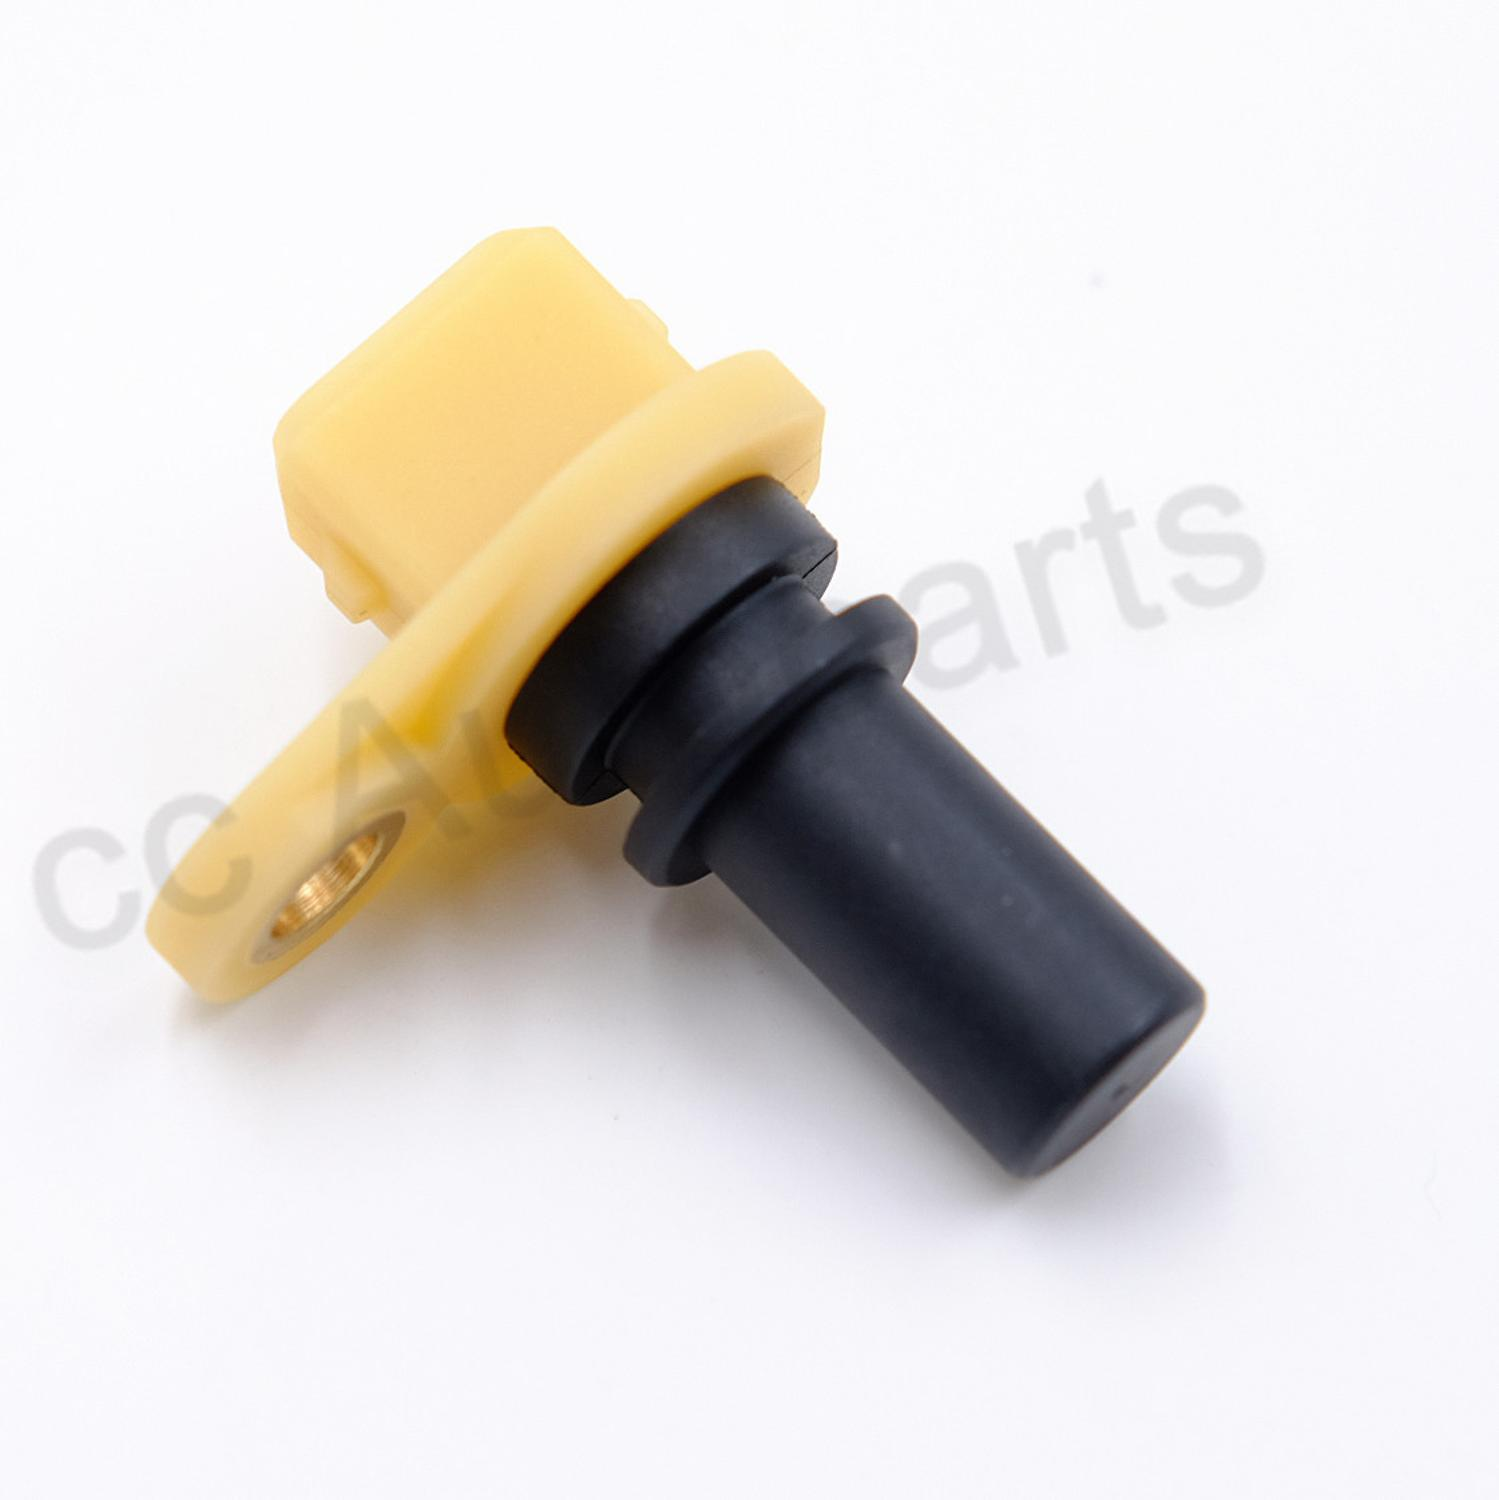 Speed Sensor For Audi 100 90 80 A3 A4 A6 R8 VW Golf Jetta Beetle Passat Polo Fiat Seat Skoda Ford 95VW7F293AB-in Speed Sensor from Automobiles & Motorcycles